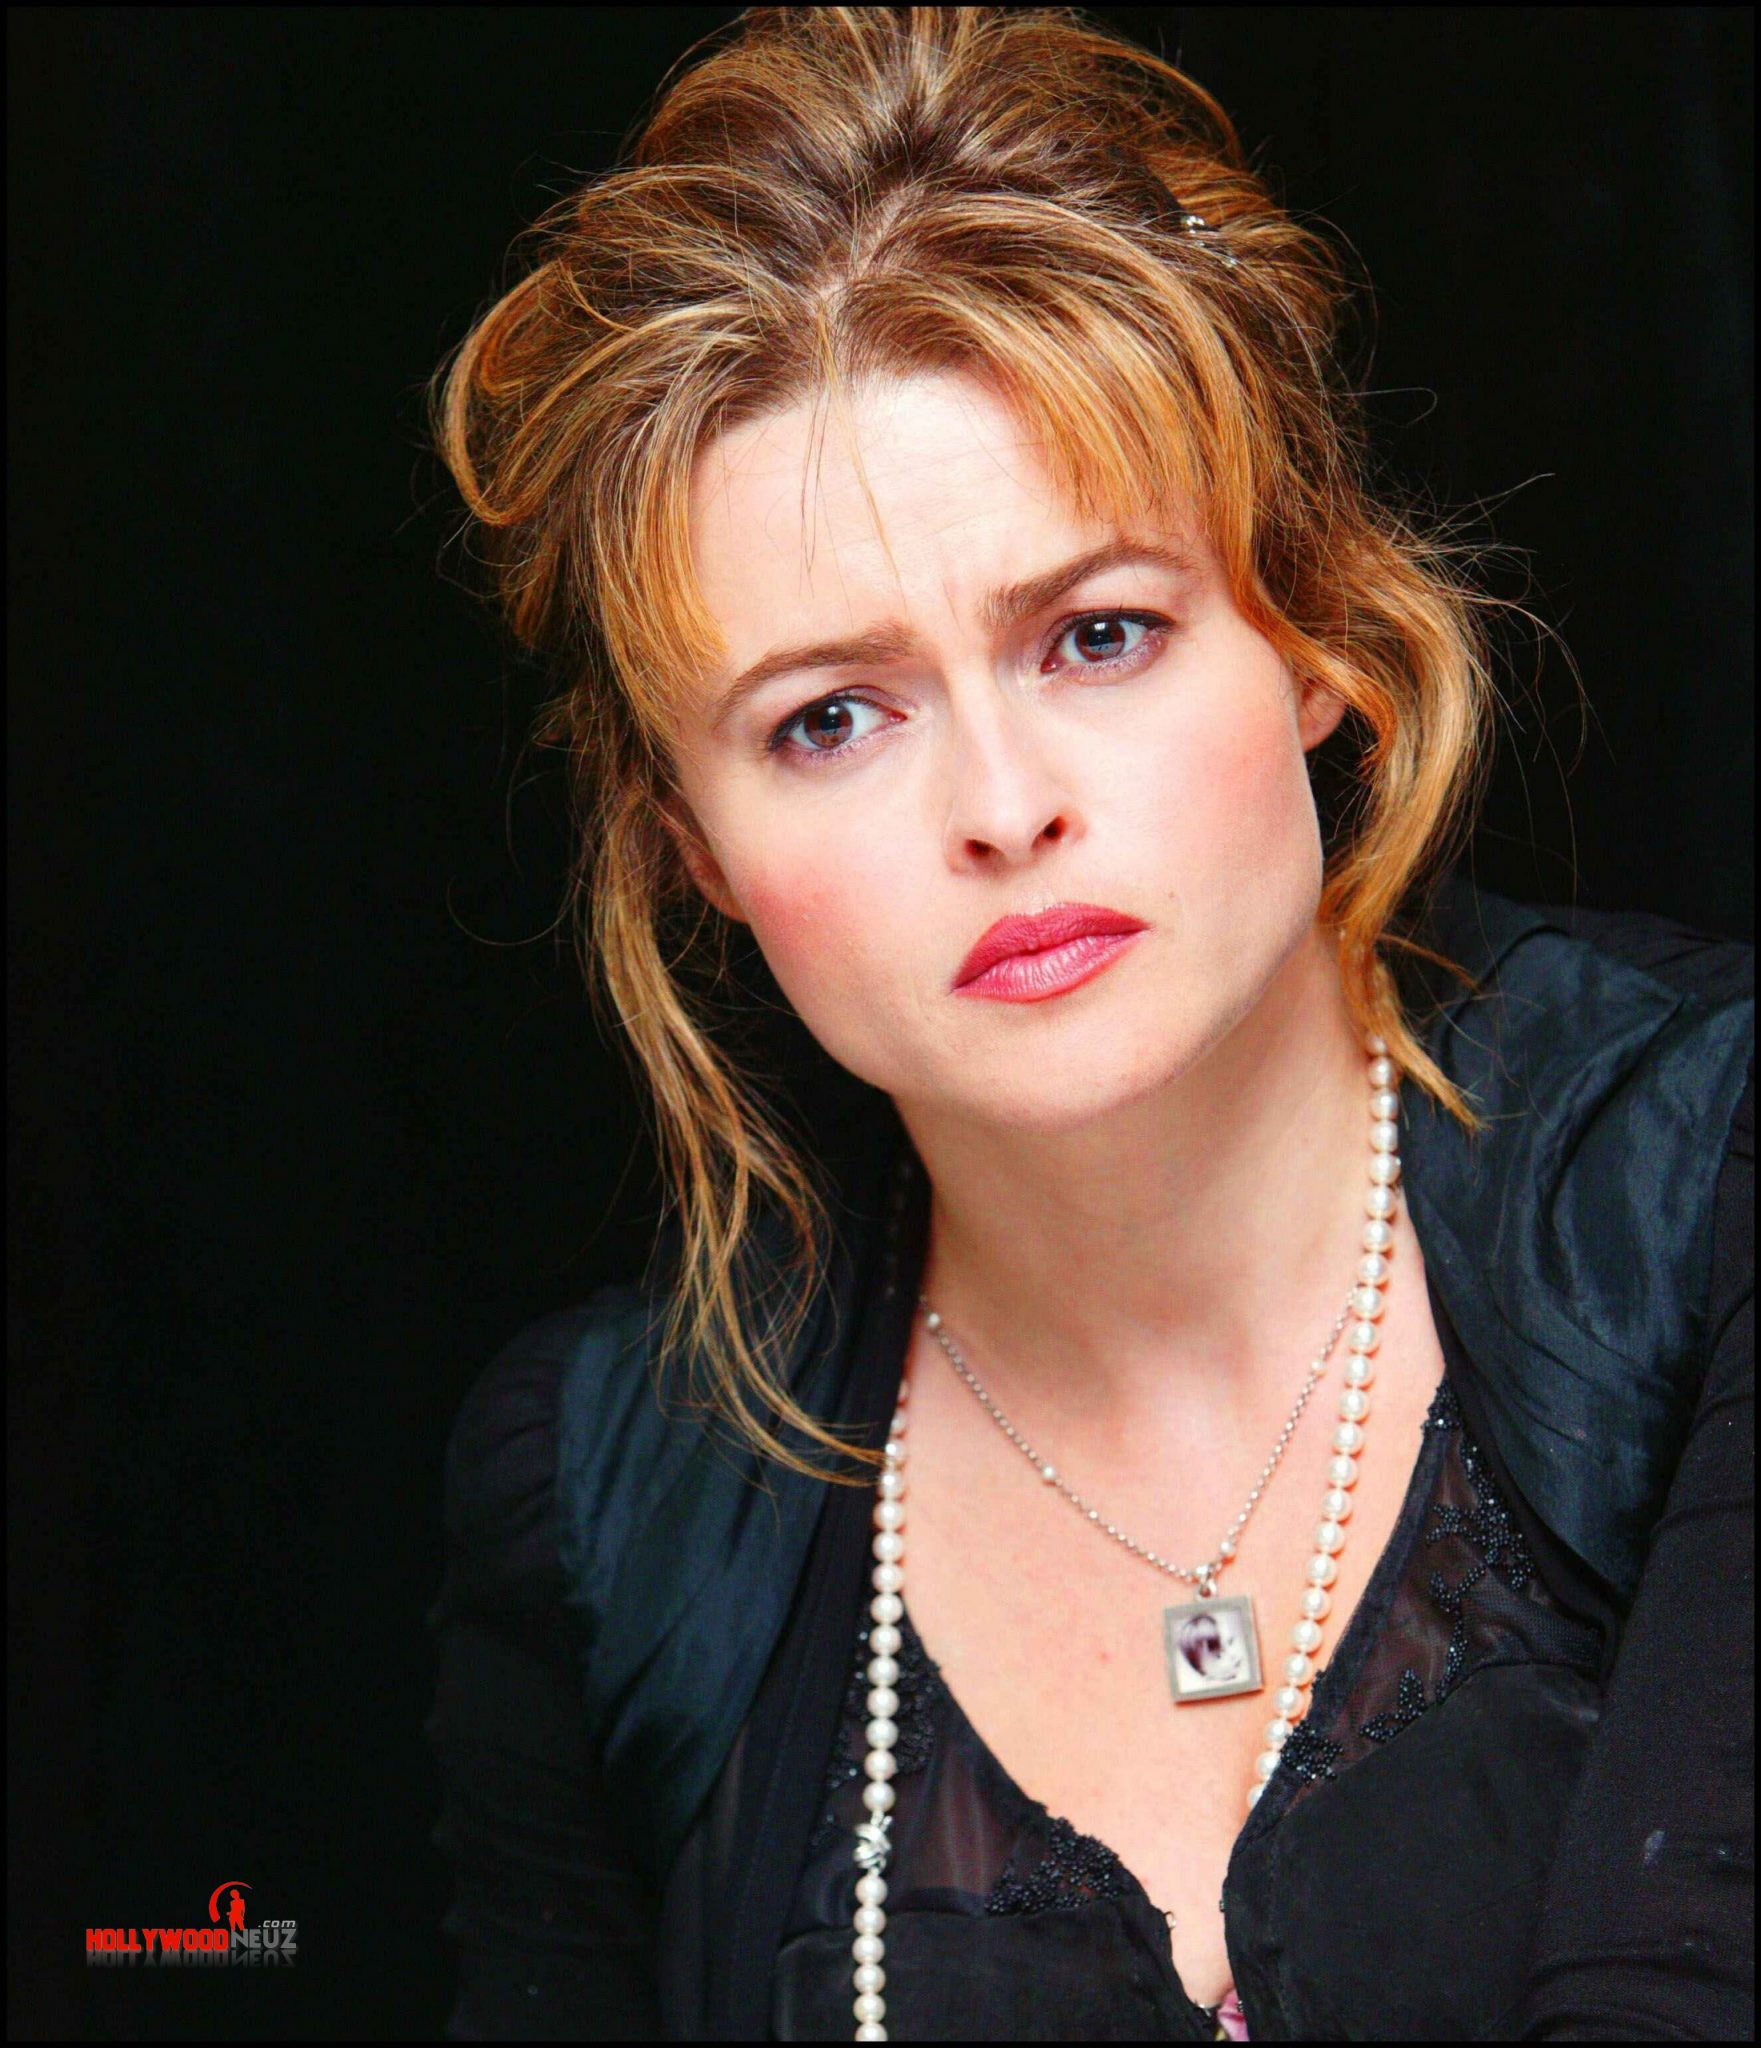 actress, bio, biography, boyfriend, celebrity, female, hollywood, husband, Helena Bonham Carter, profile